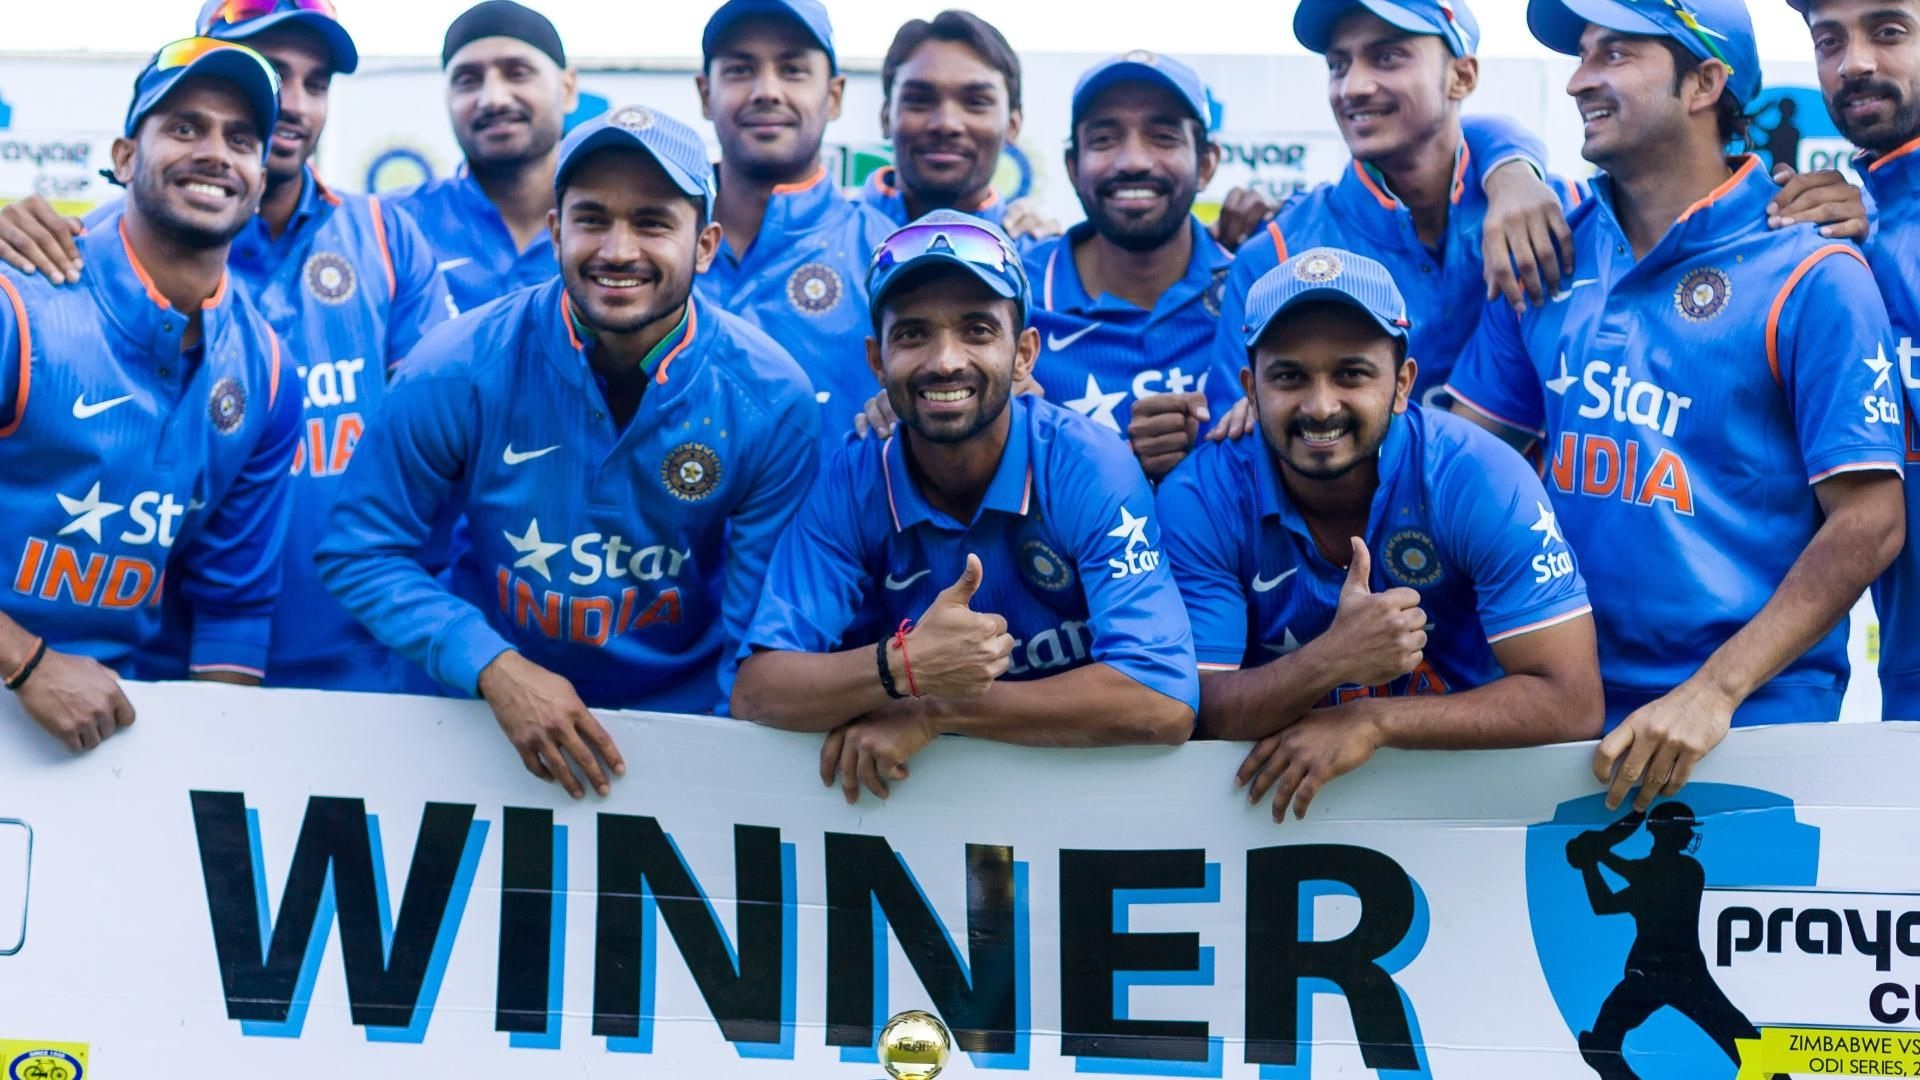 Indian Cricket Hd Wallpapers